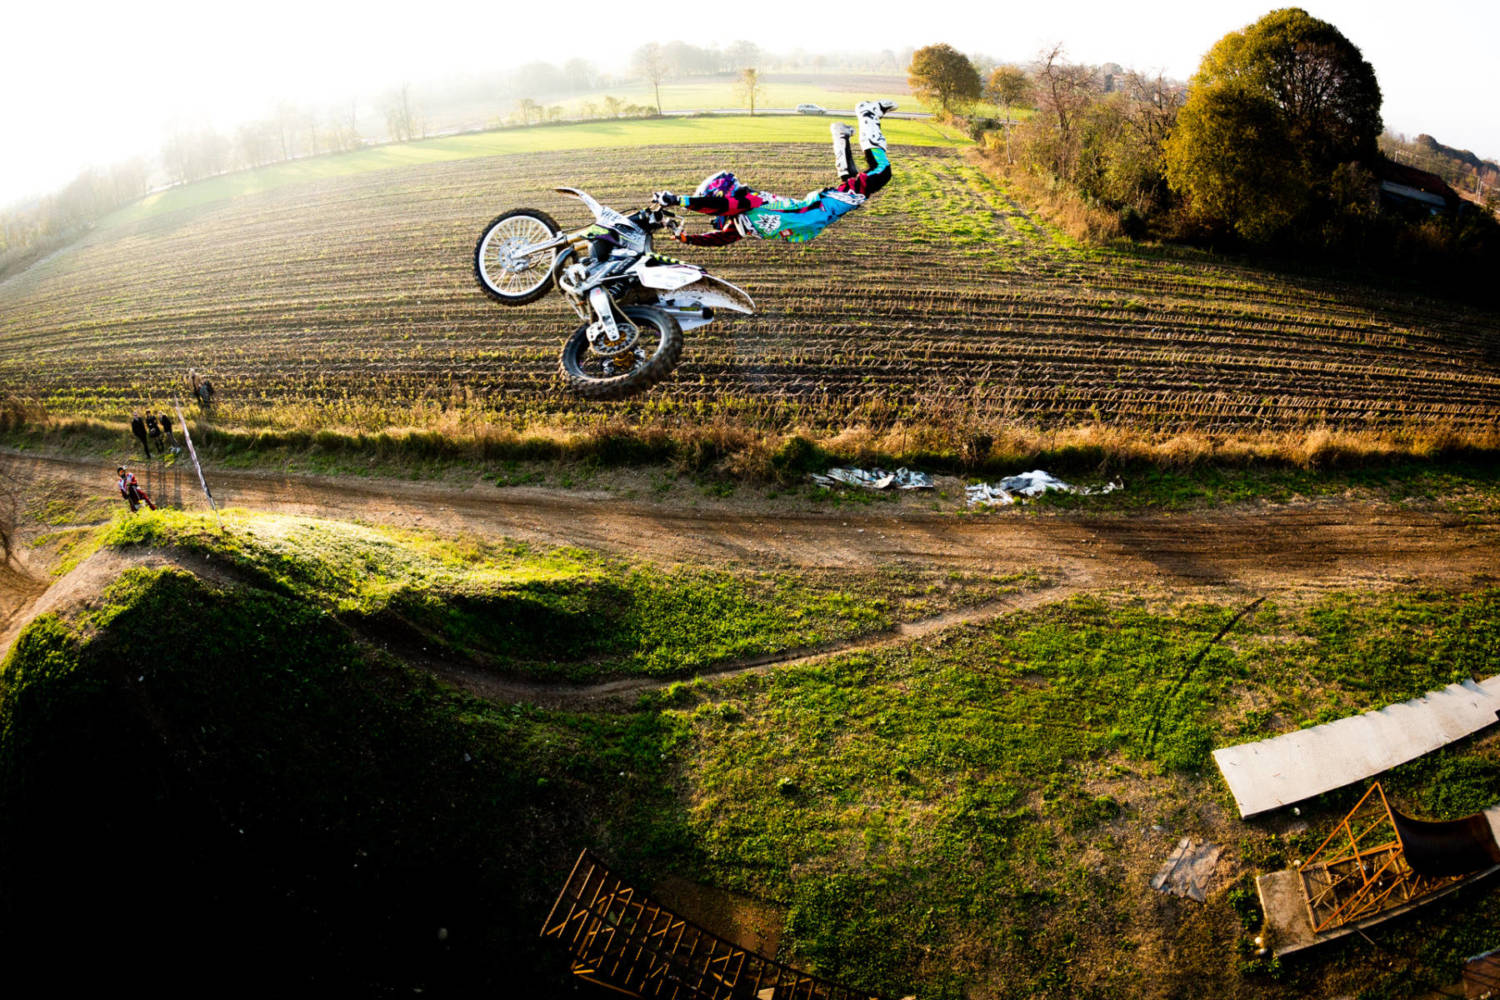 Roberto Bragotto - Fotografo Action Sports Summer